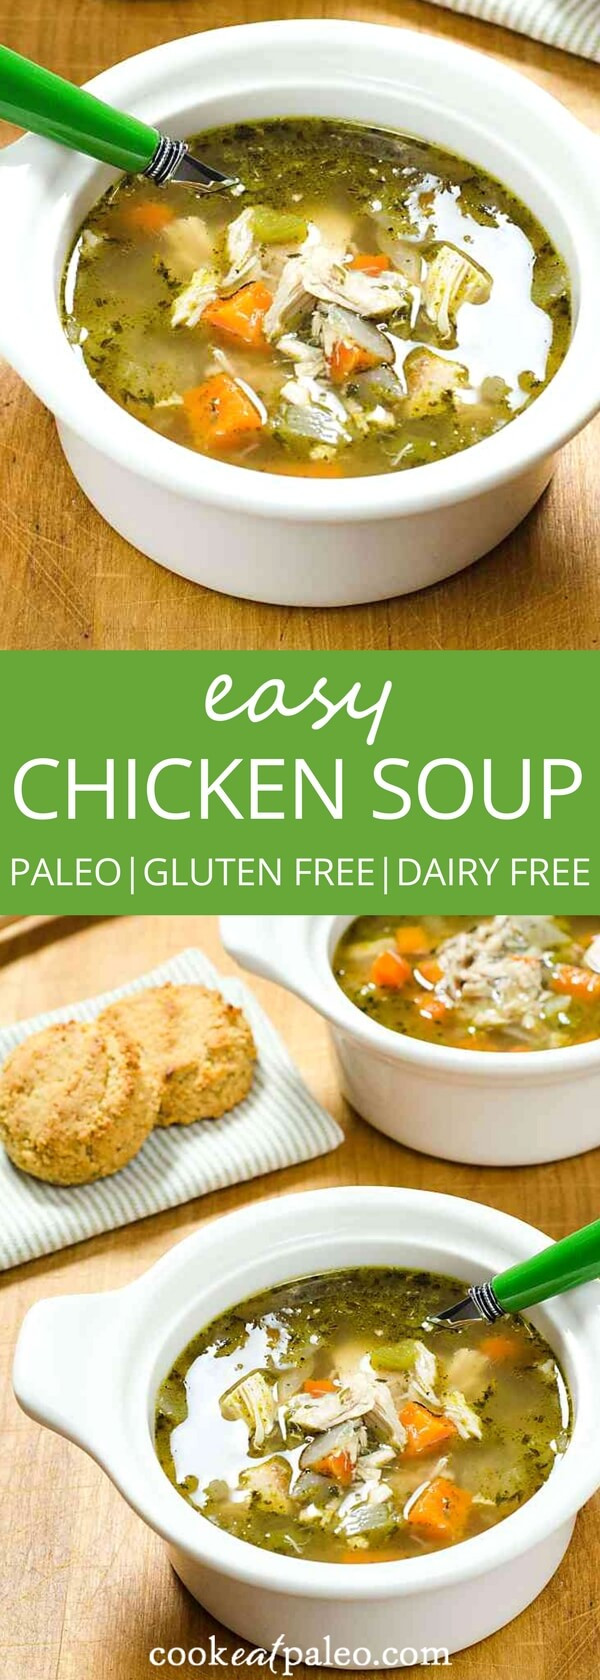 Easy Gluten Free Soup Recipes  Chicken Soup Recipe in a Hurry